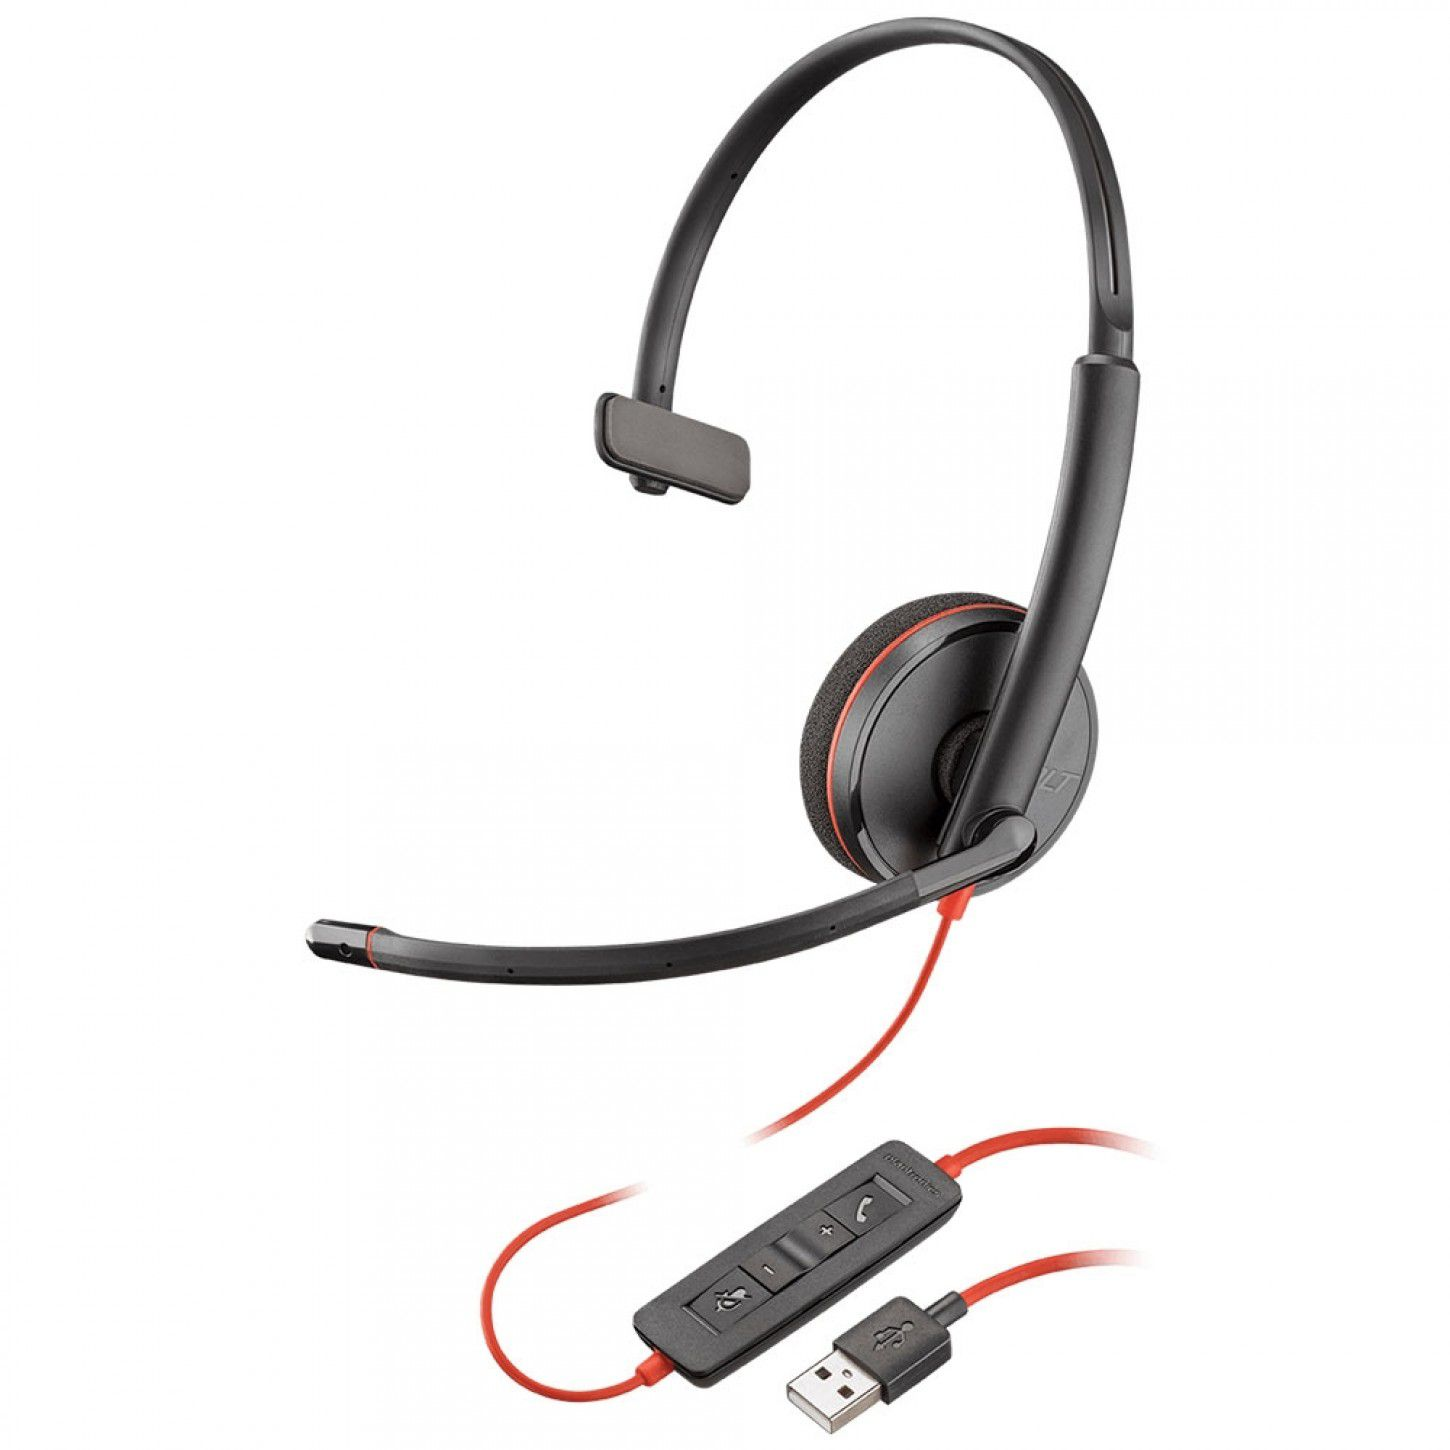 HEADSET USB - PLANTRONICS BLACKWIRE C3210